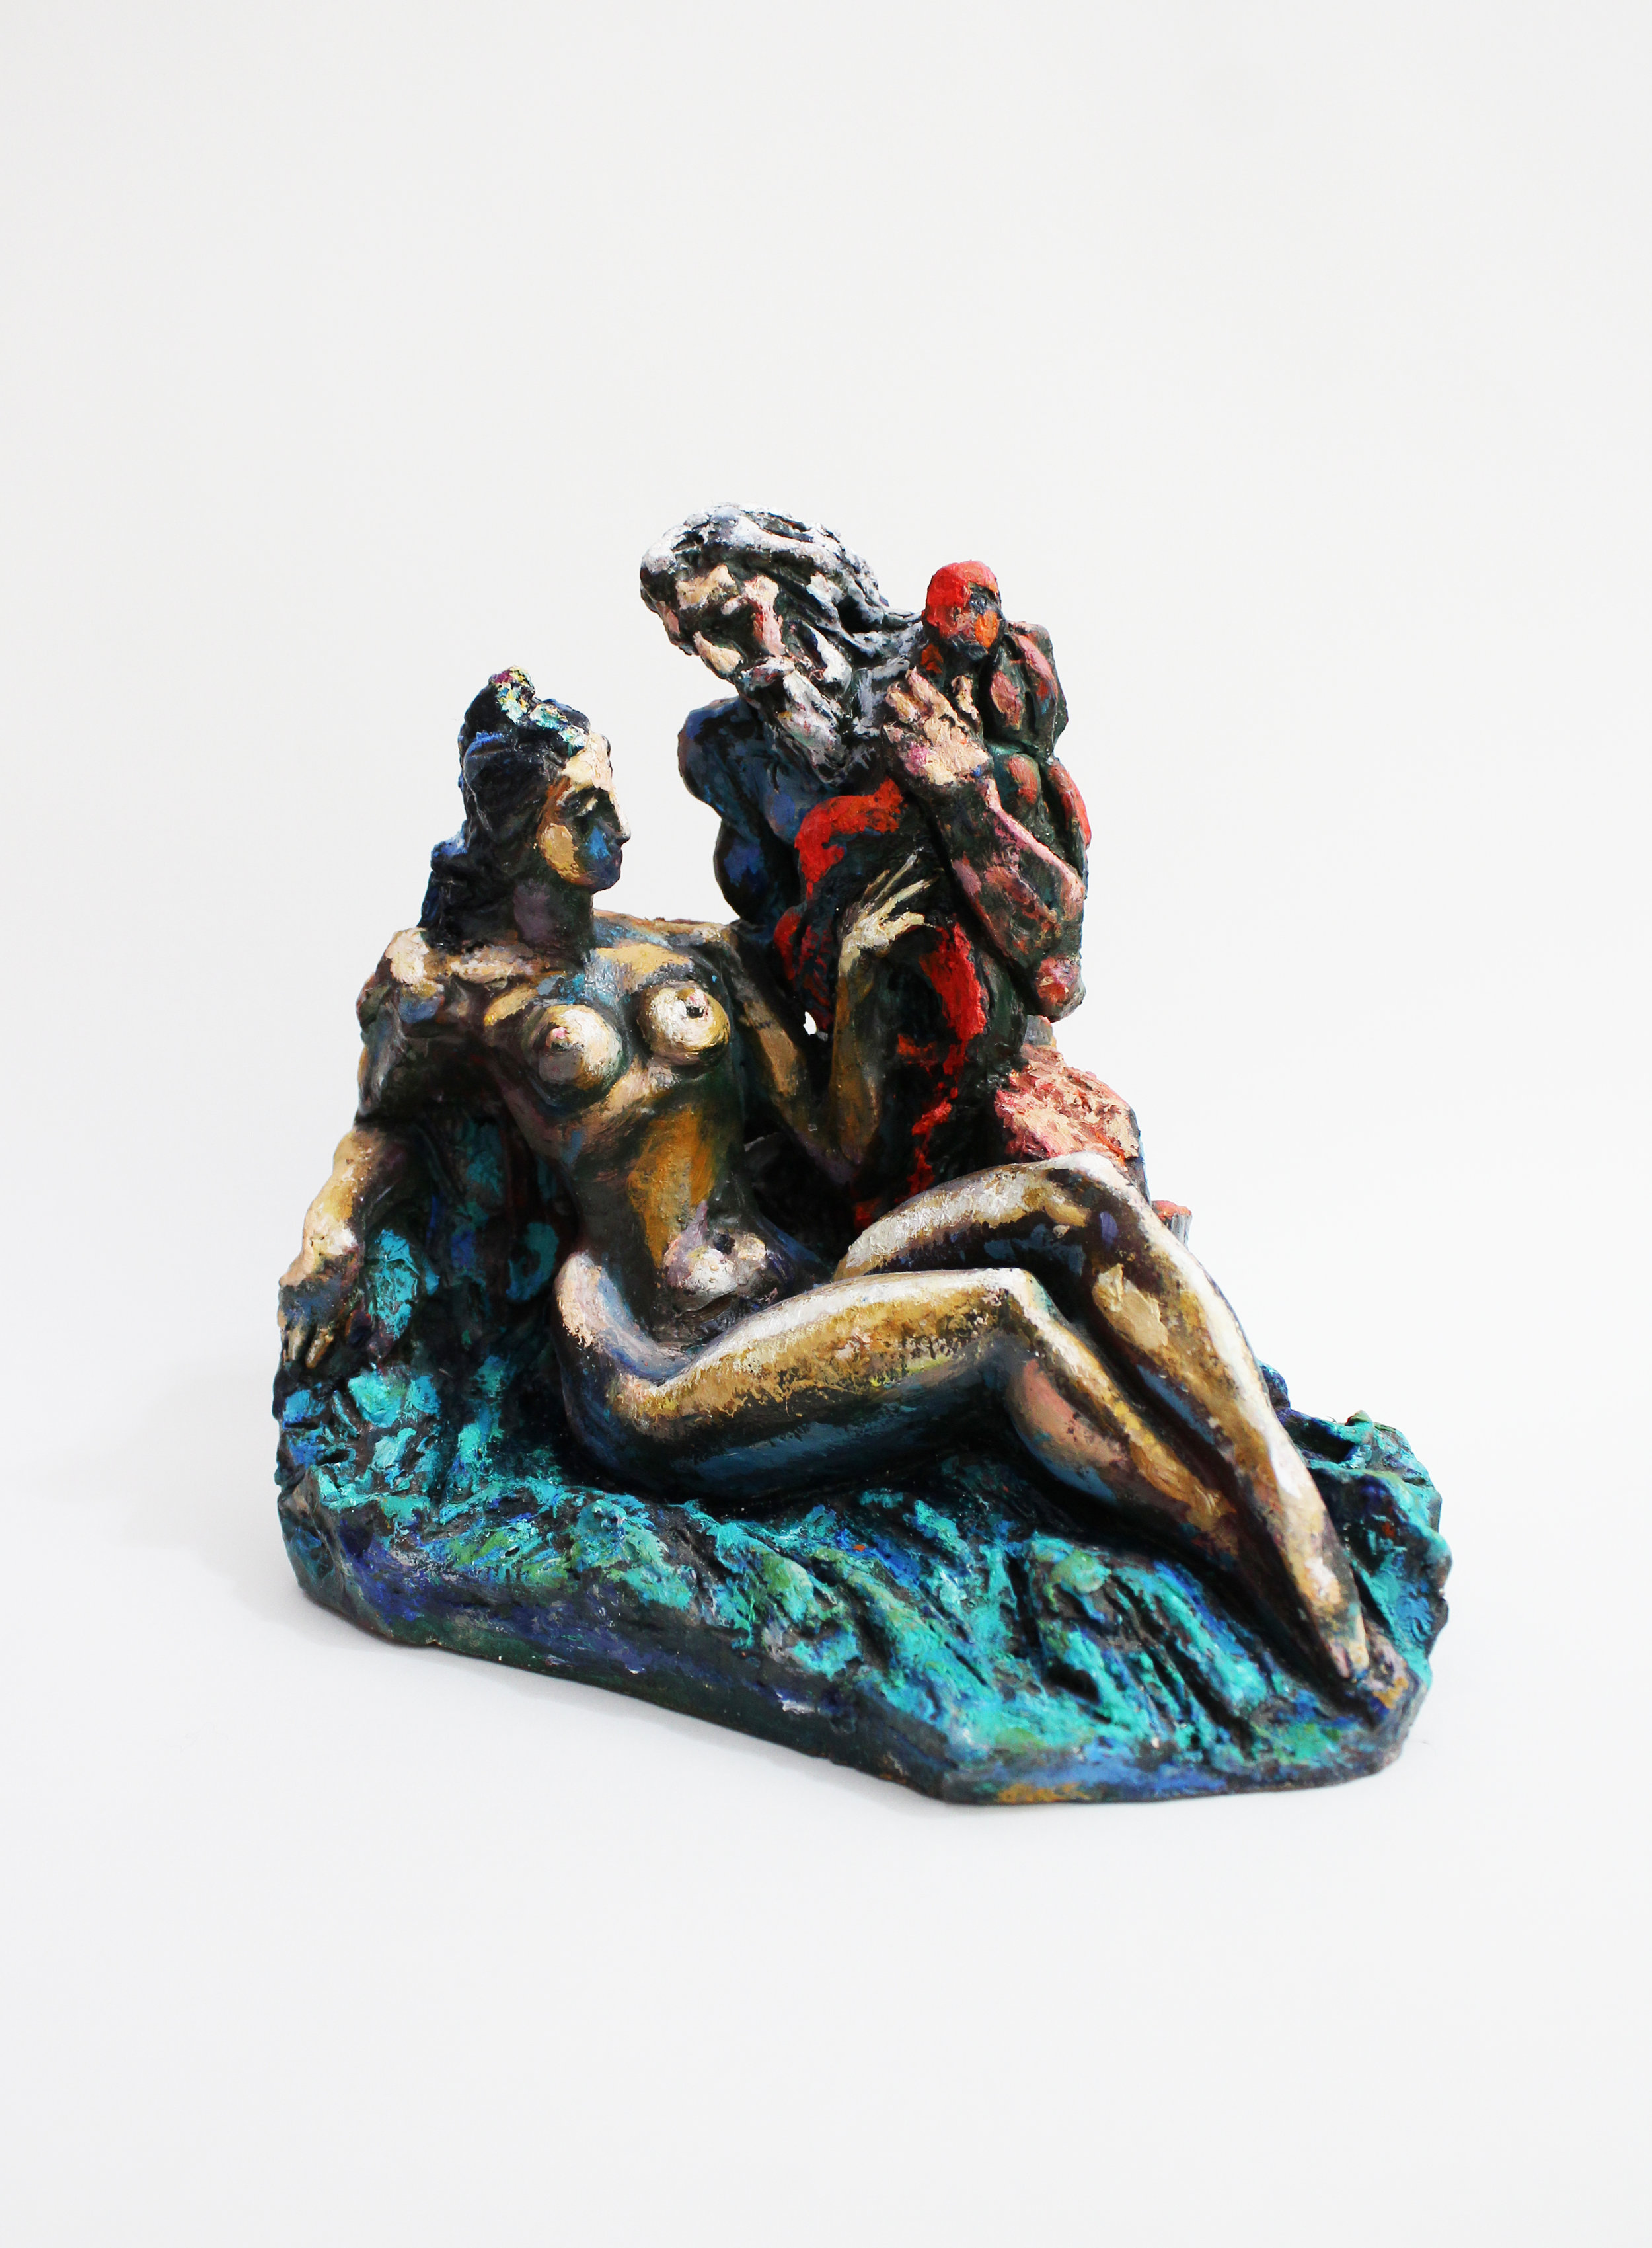 'Diana and Zeus', Alex and Ruv Nemirovsky, oil paints on fired clay, 26x20x17cm, $850